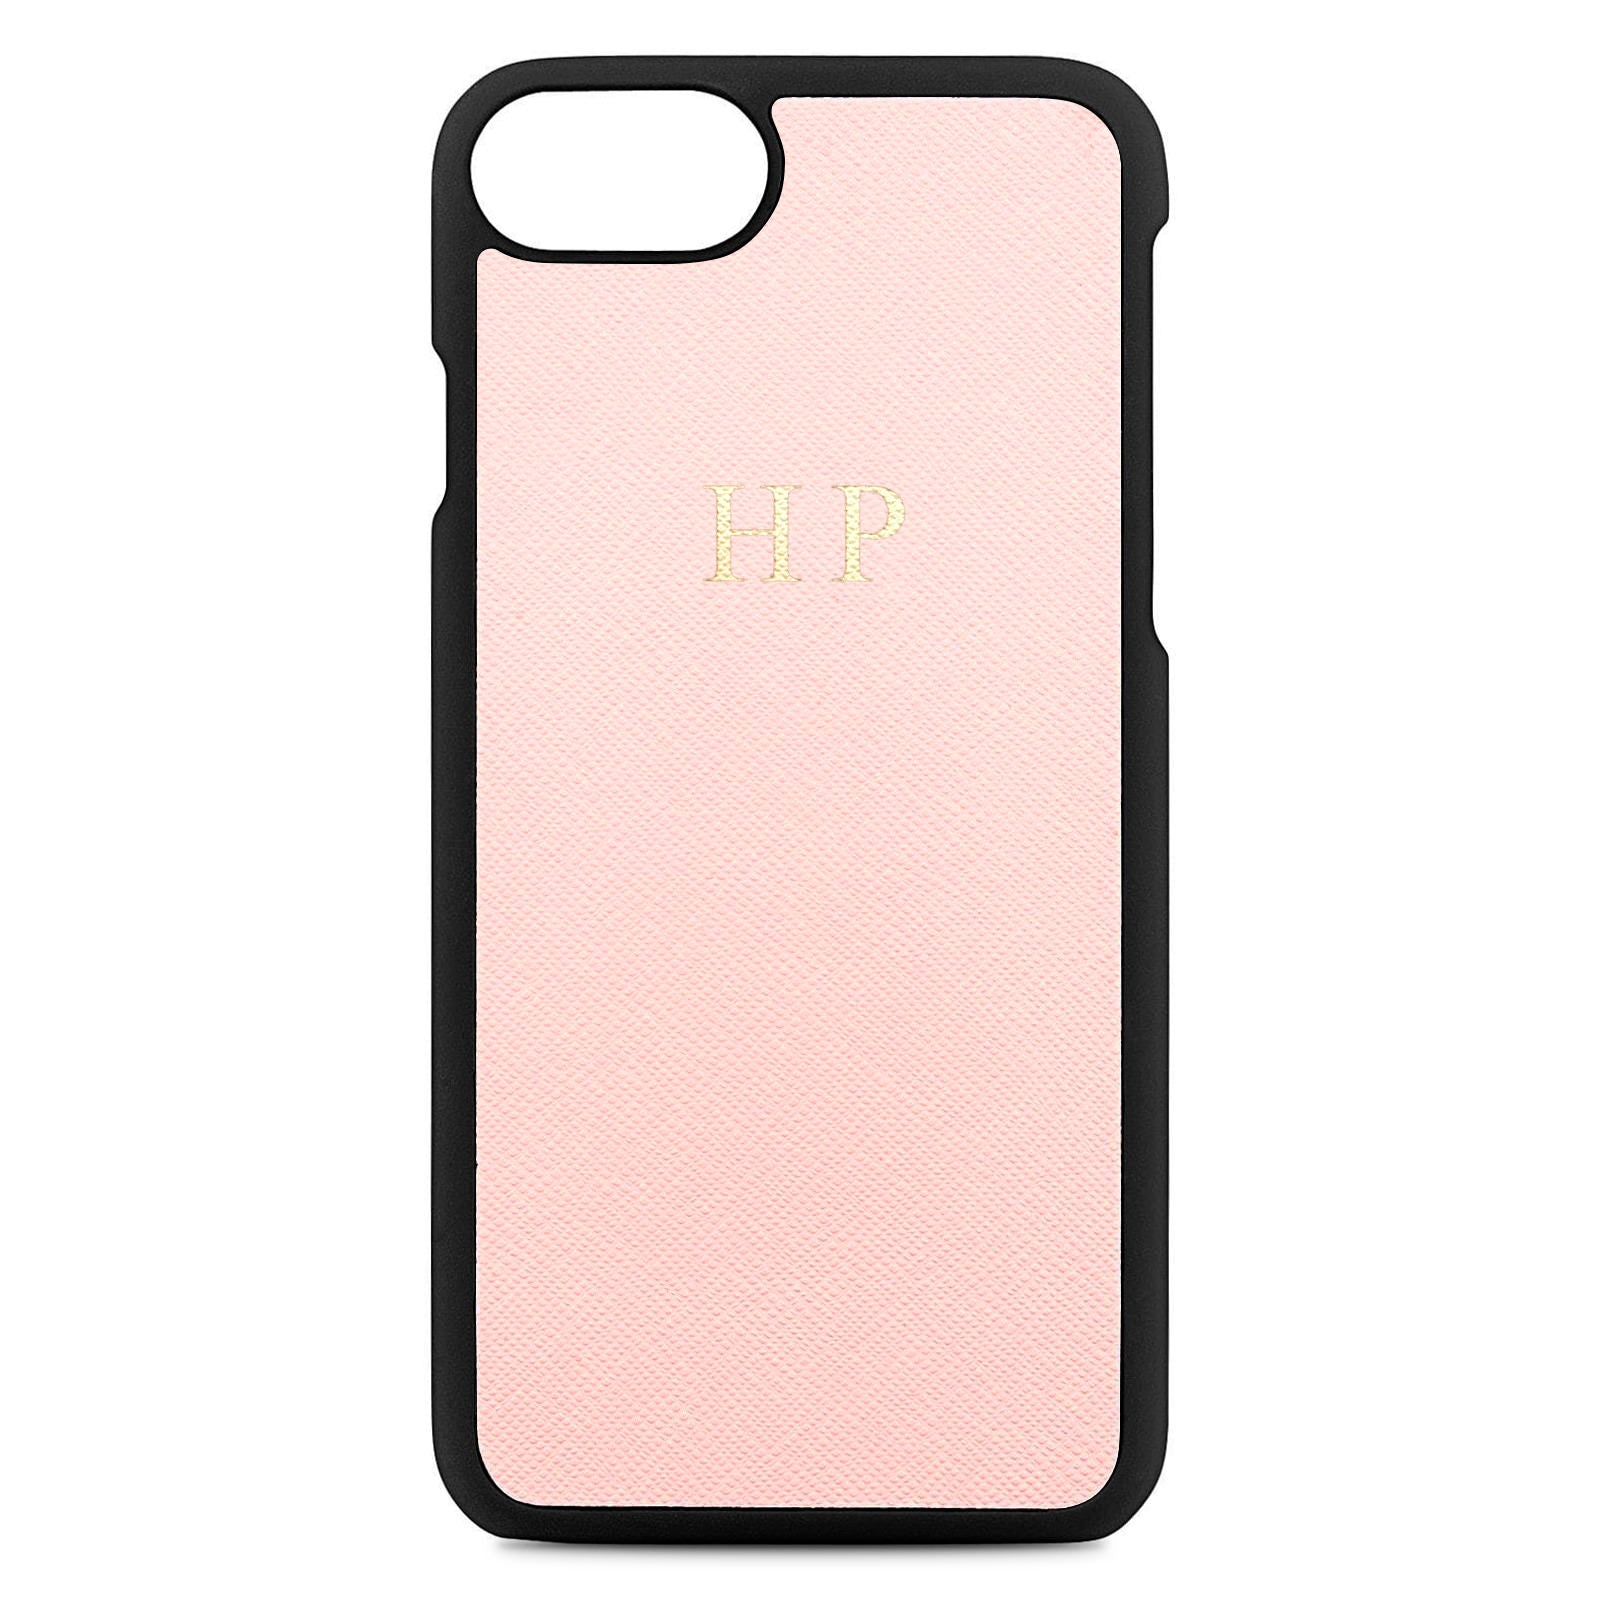 Personalised Pink Saffiano Leather iPhone Case